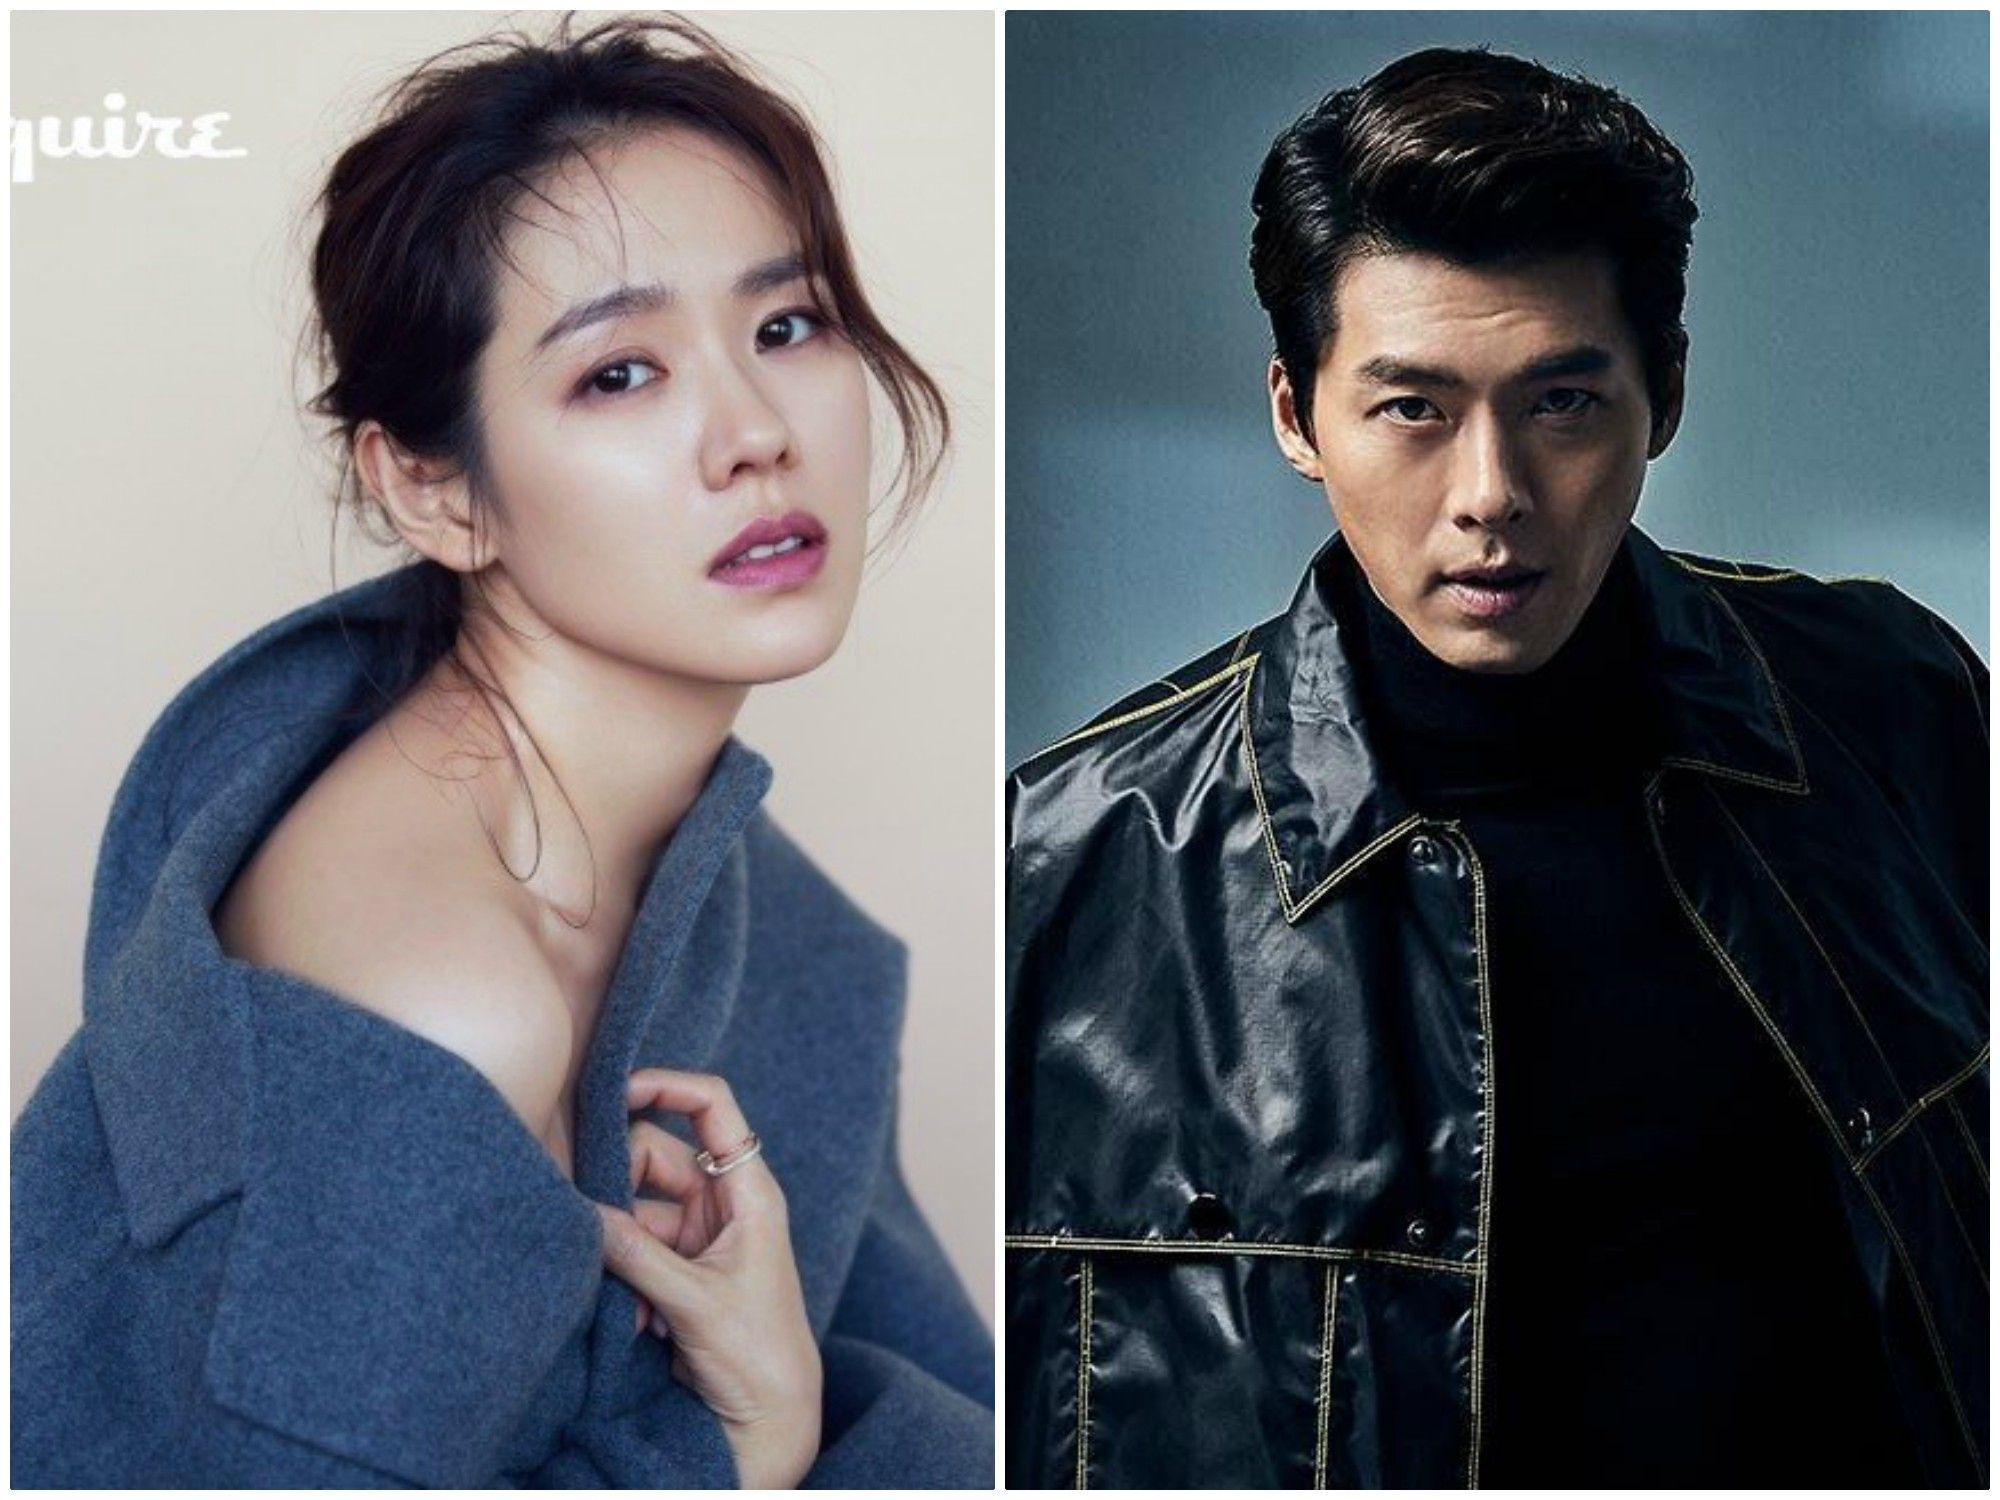 Hyun Bin and Son Ye Jin have confirmed their appearance in a new project